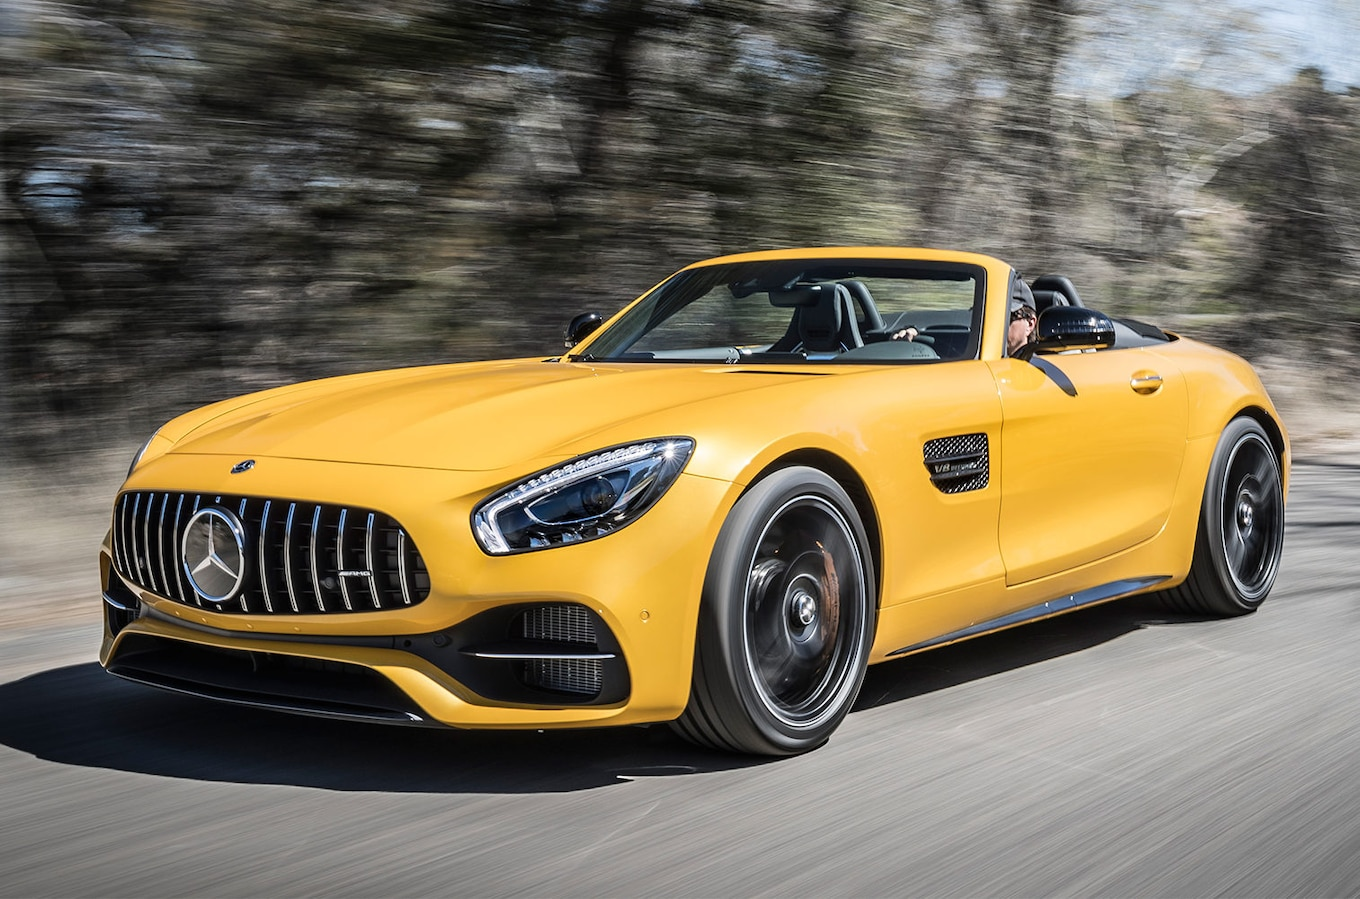 Mercedes Amg Gt C Roadster 2017 2018 Mercedes Amg Gt Roadster And Gt C Roadster First Drive Review